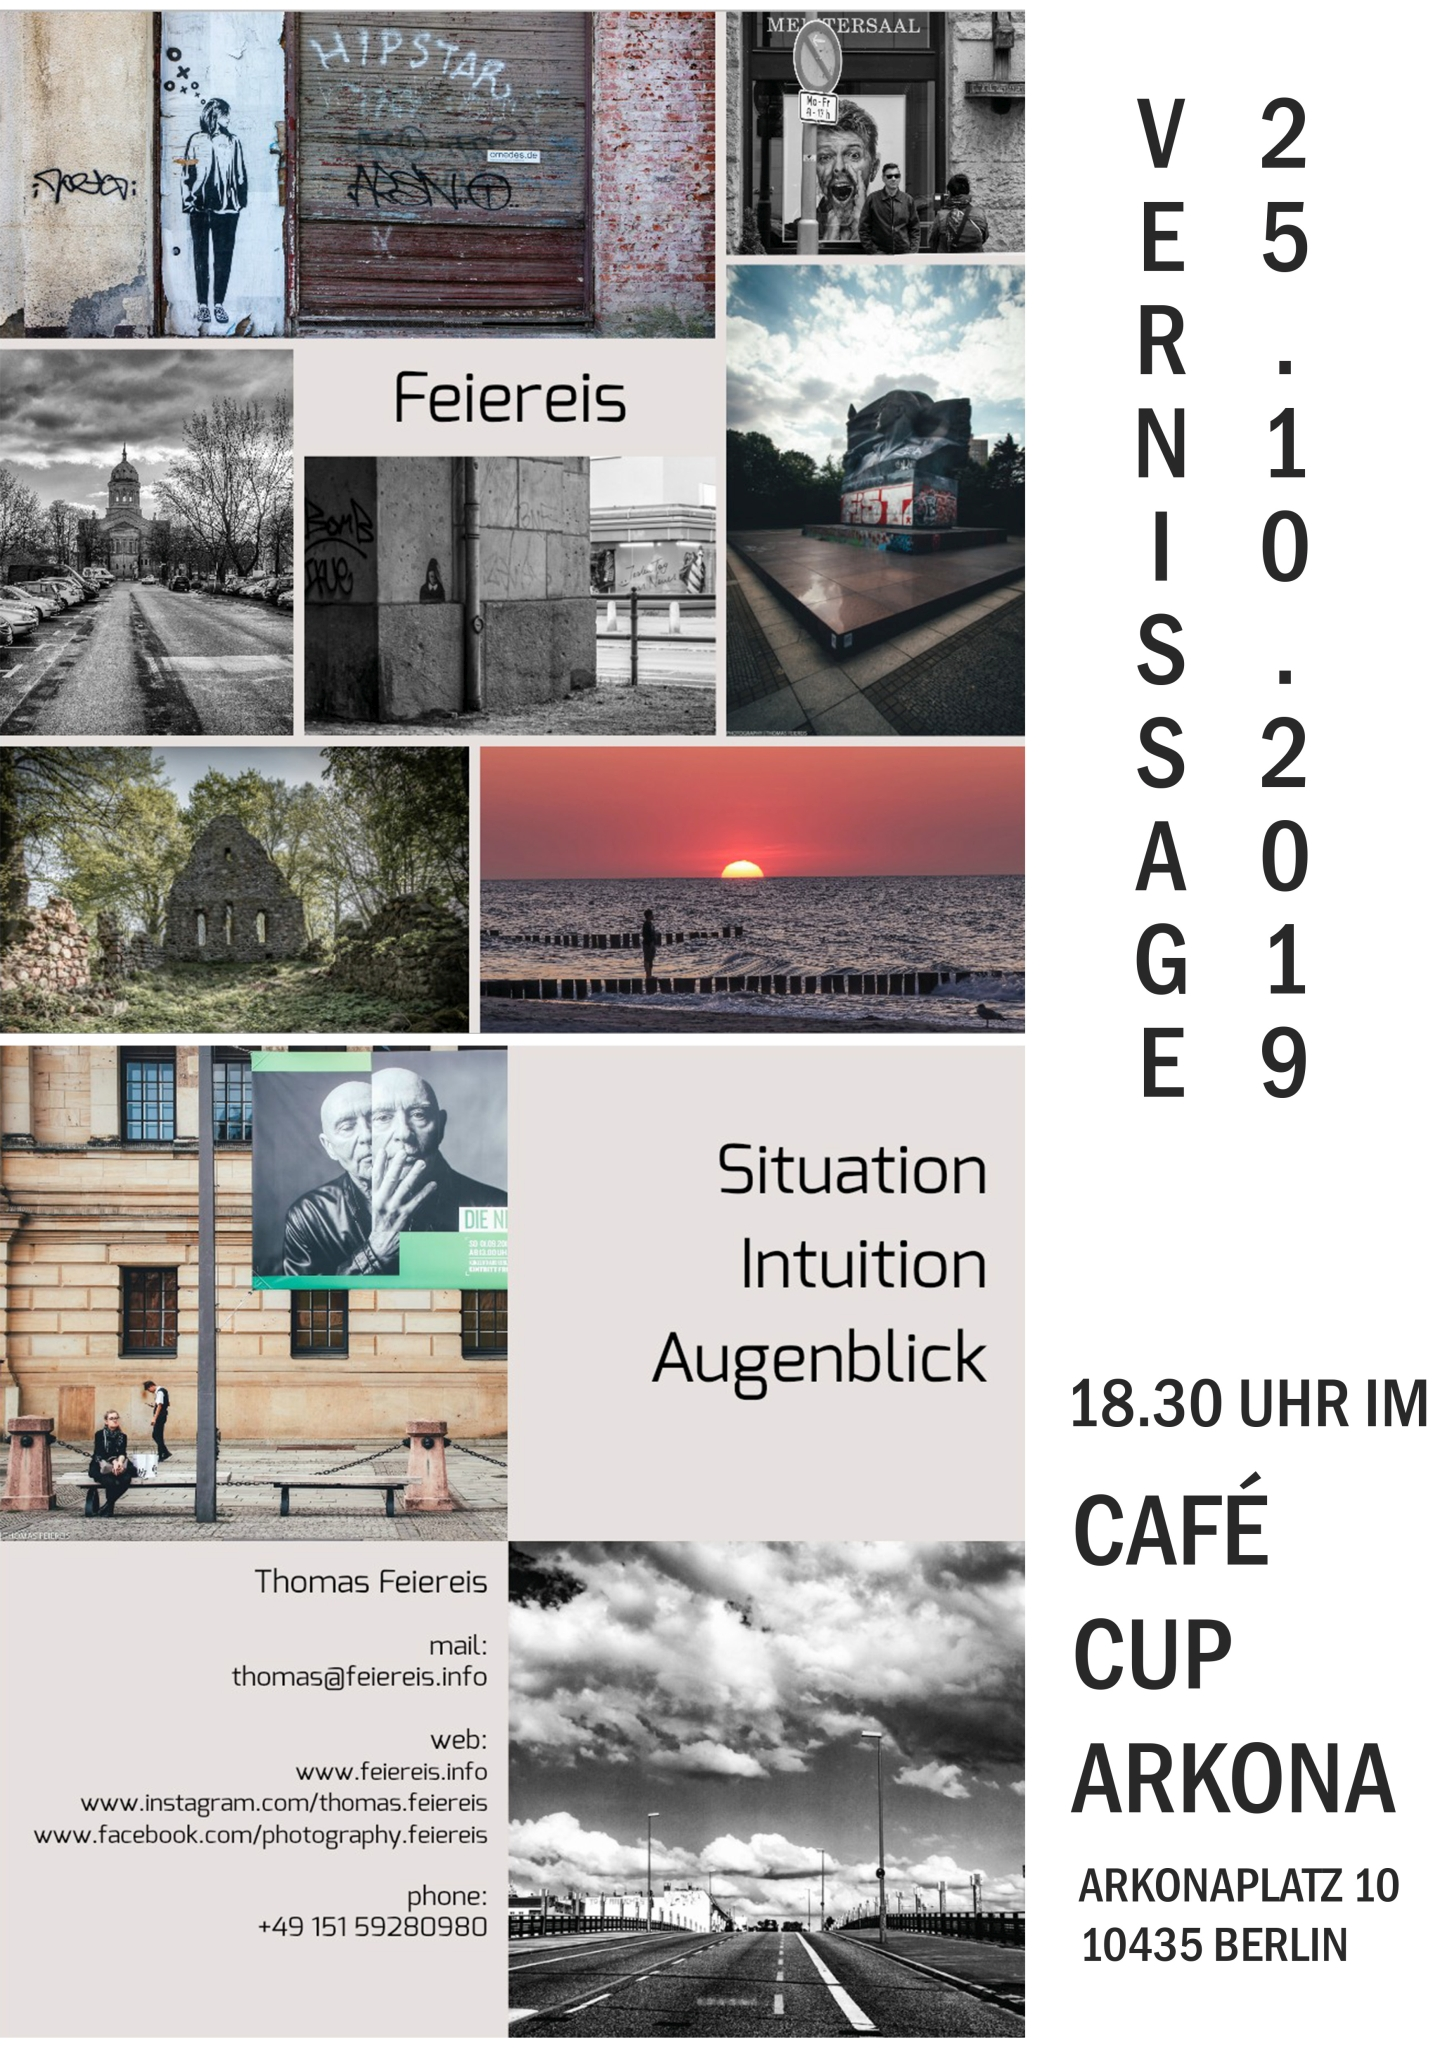 Vernissage Cafe Cup Arkona Berlin